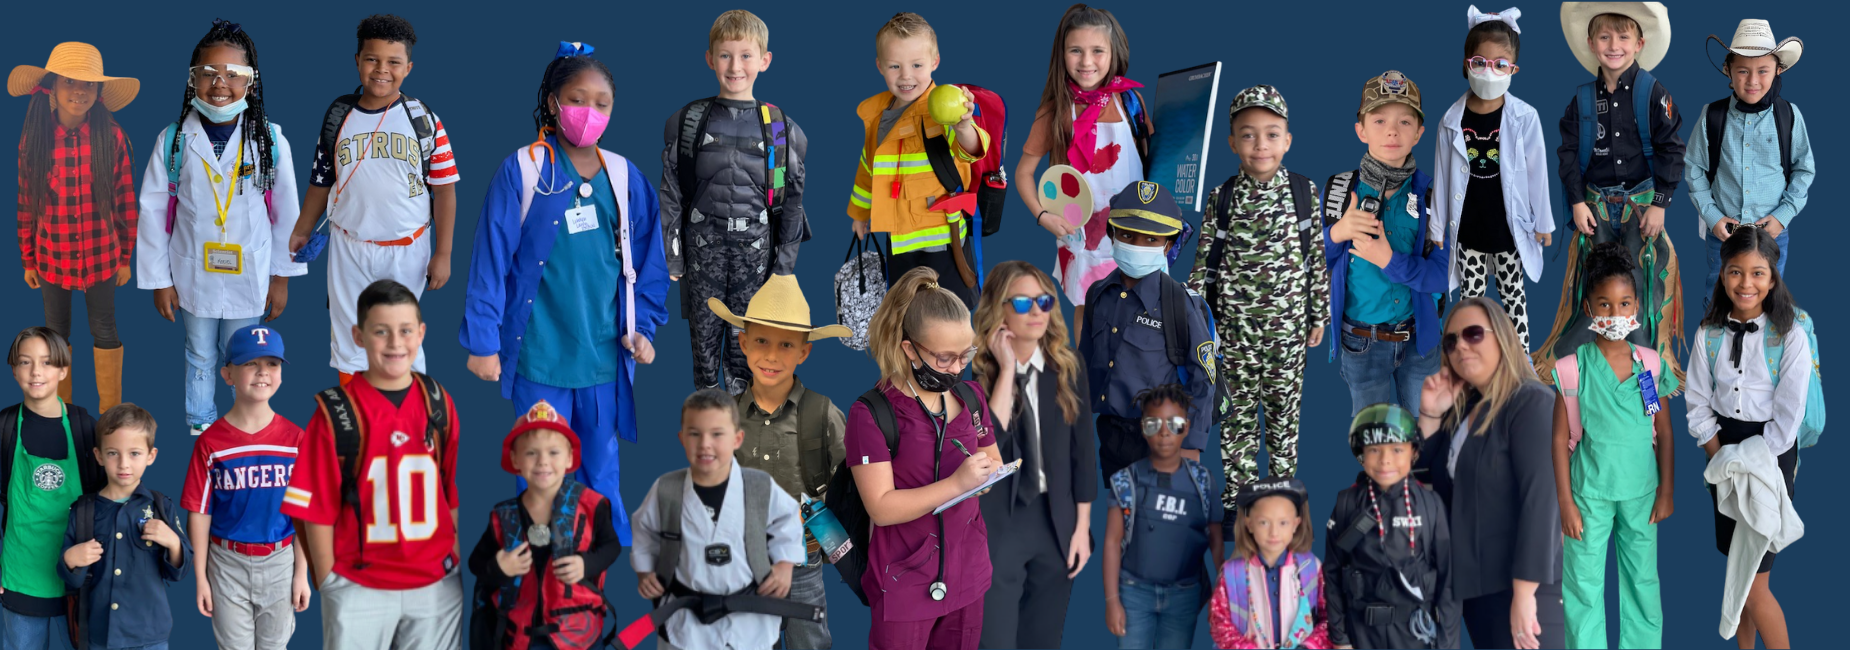 collage of kiddos dressed up for future career day